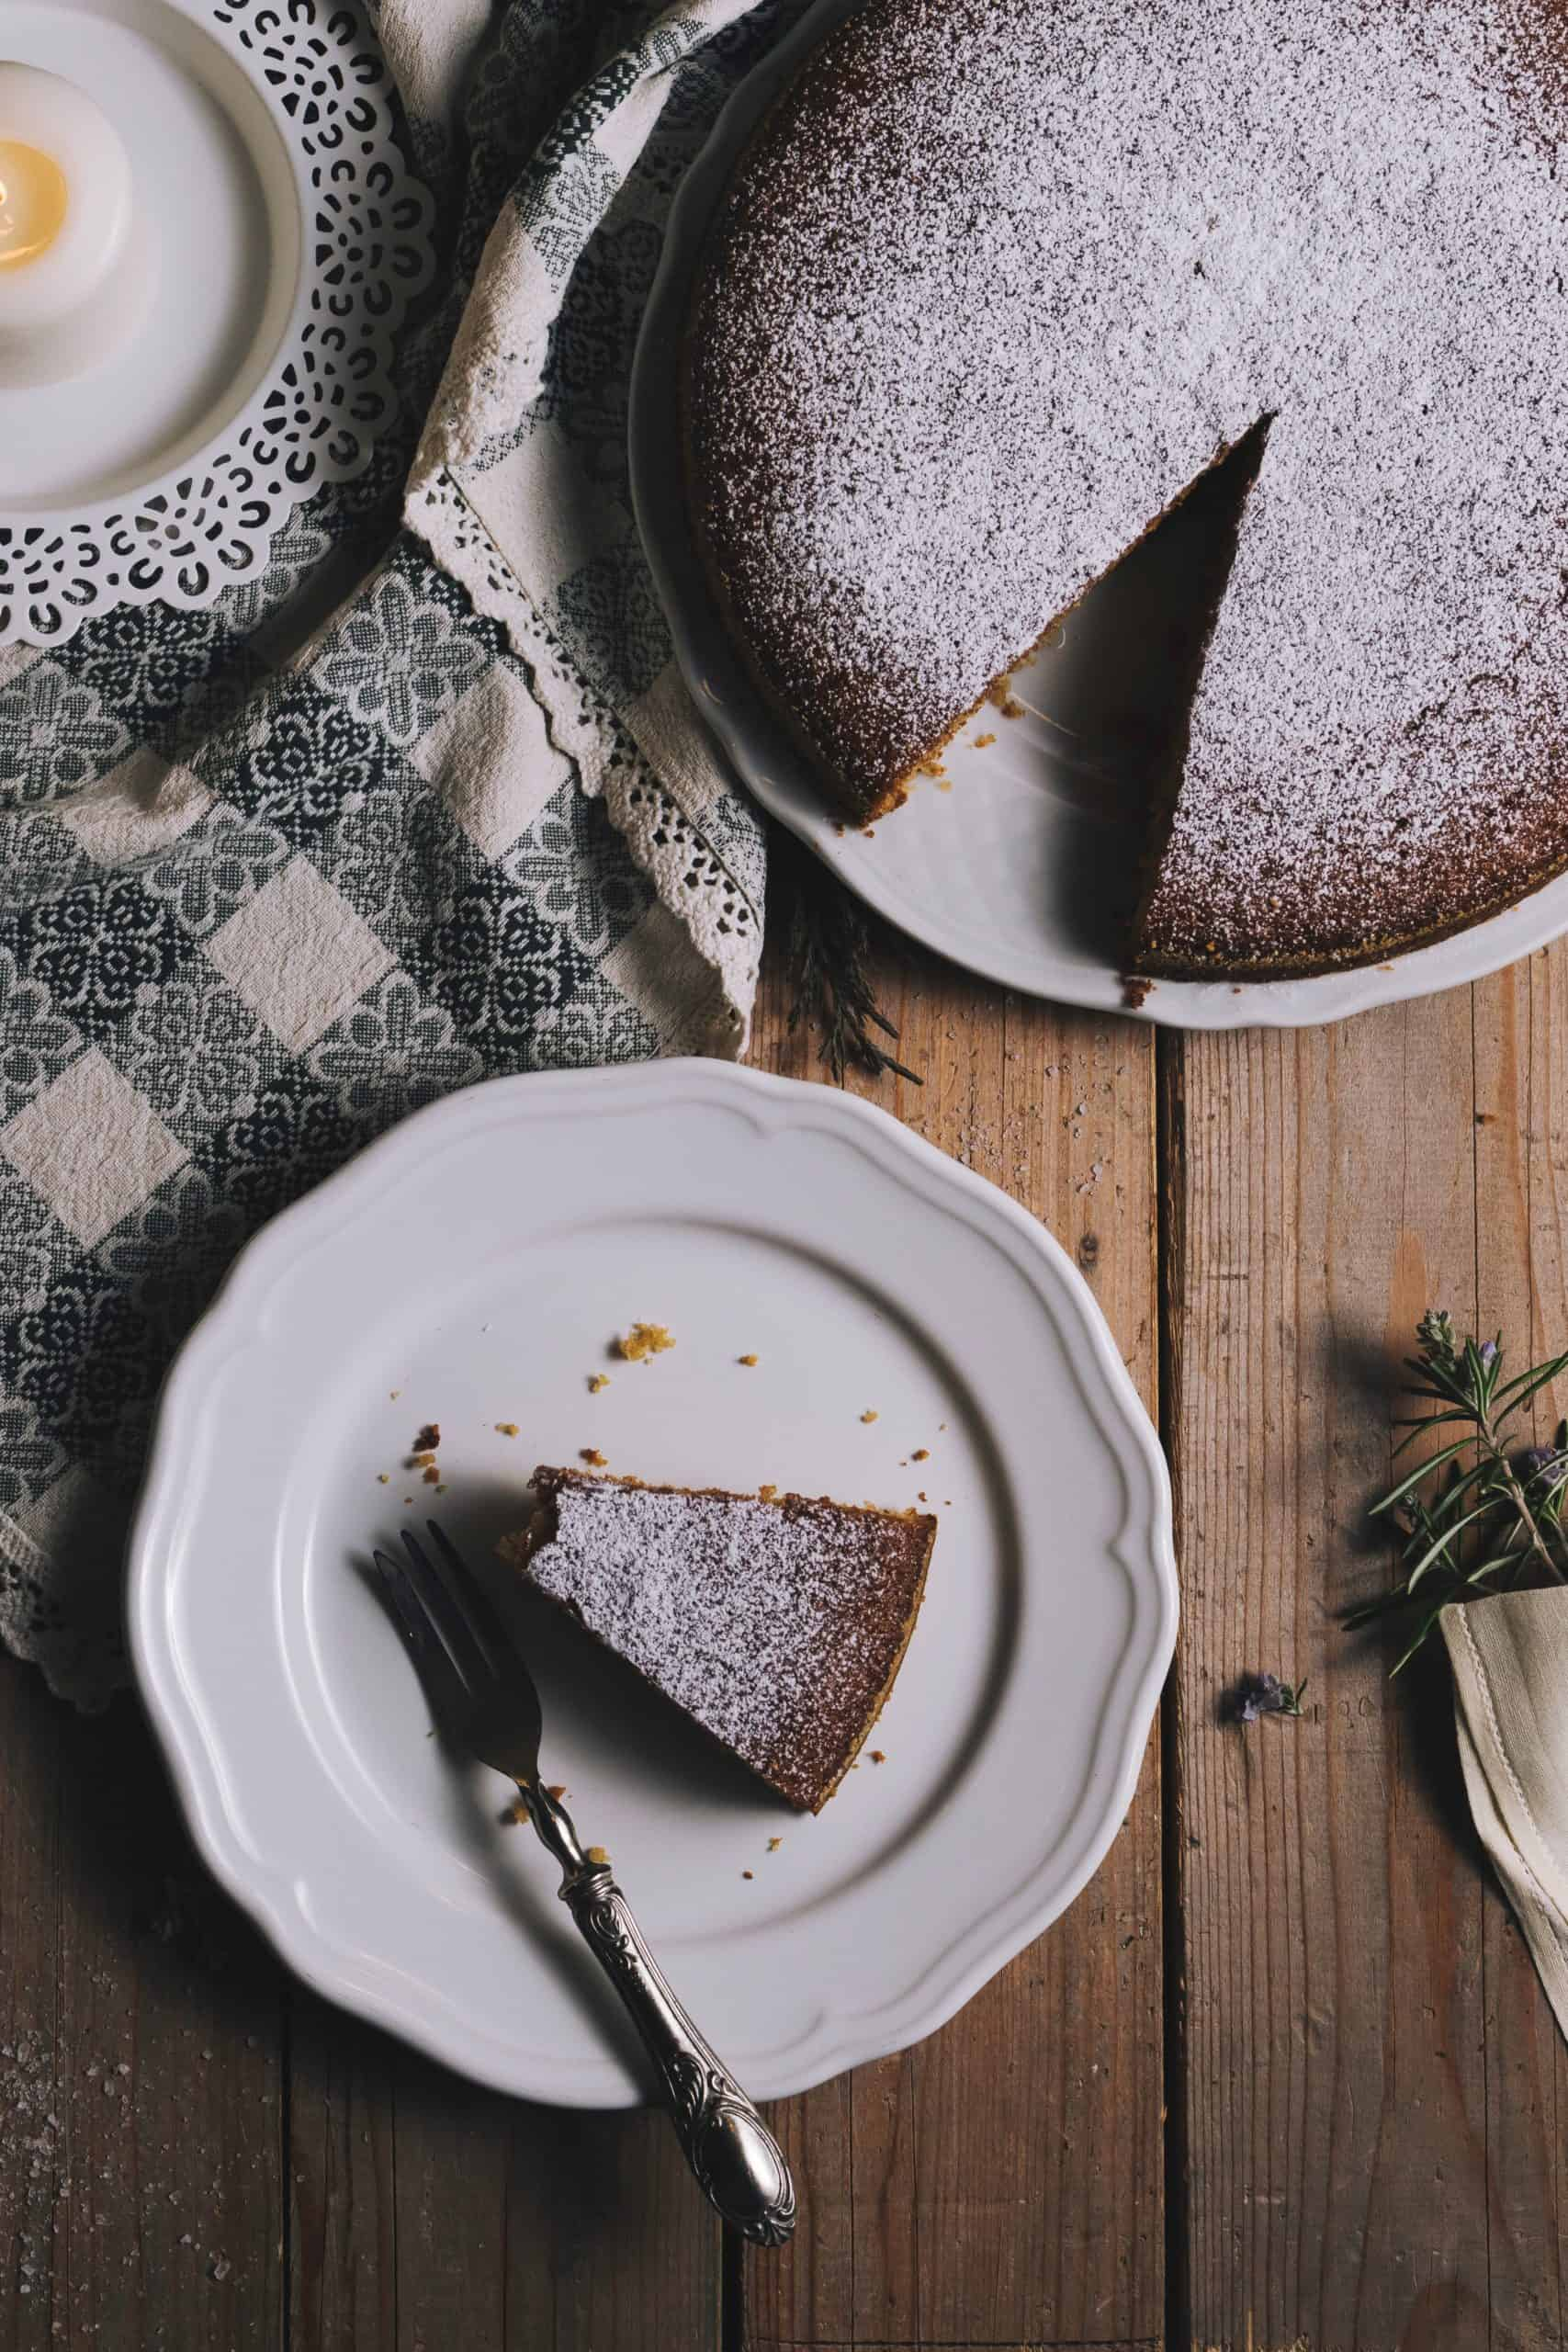 Chocolate Cake Decorating Ideas: Simple And Easy Ones